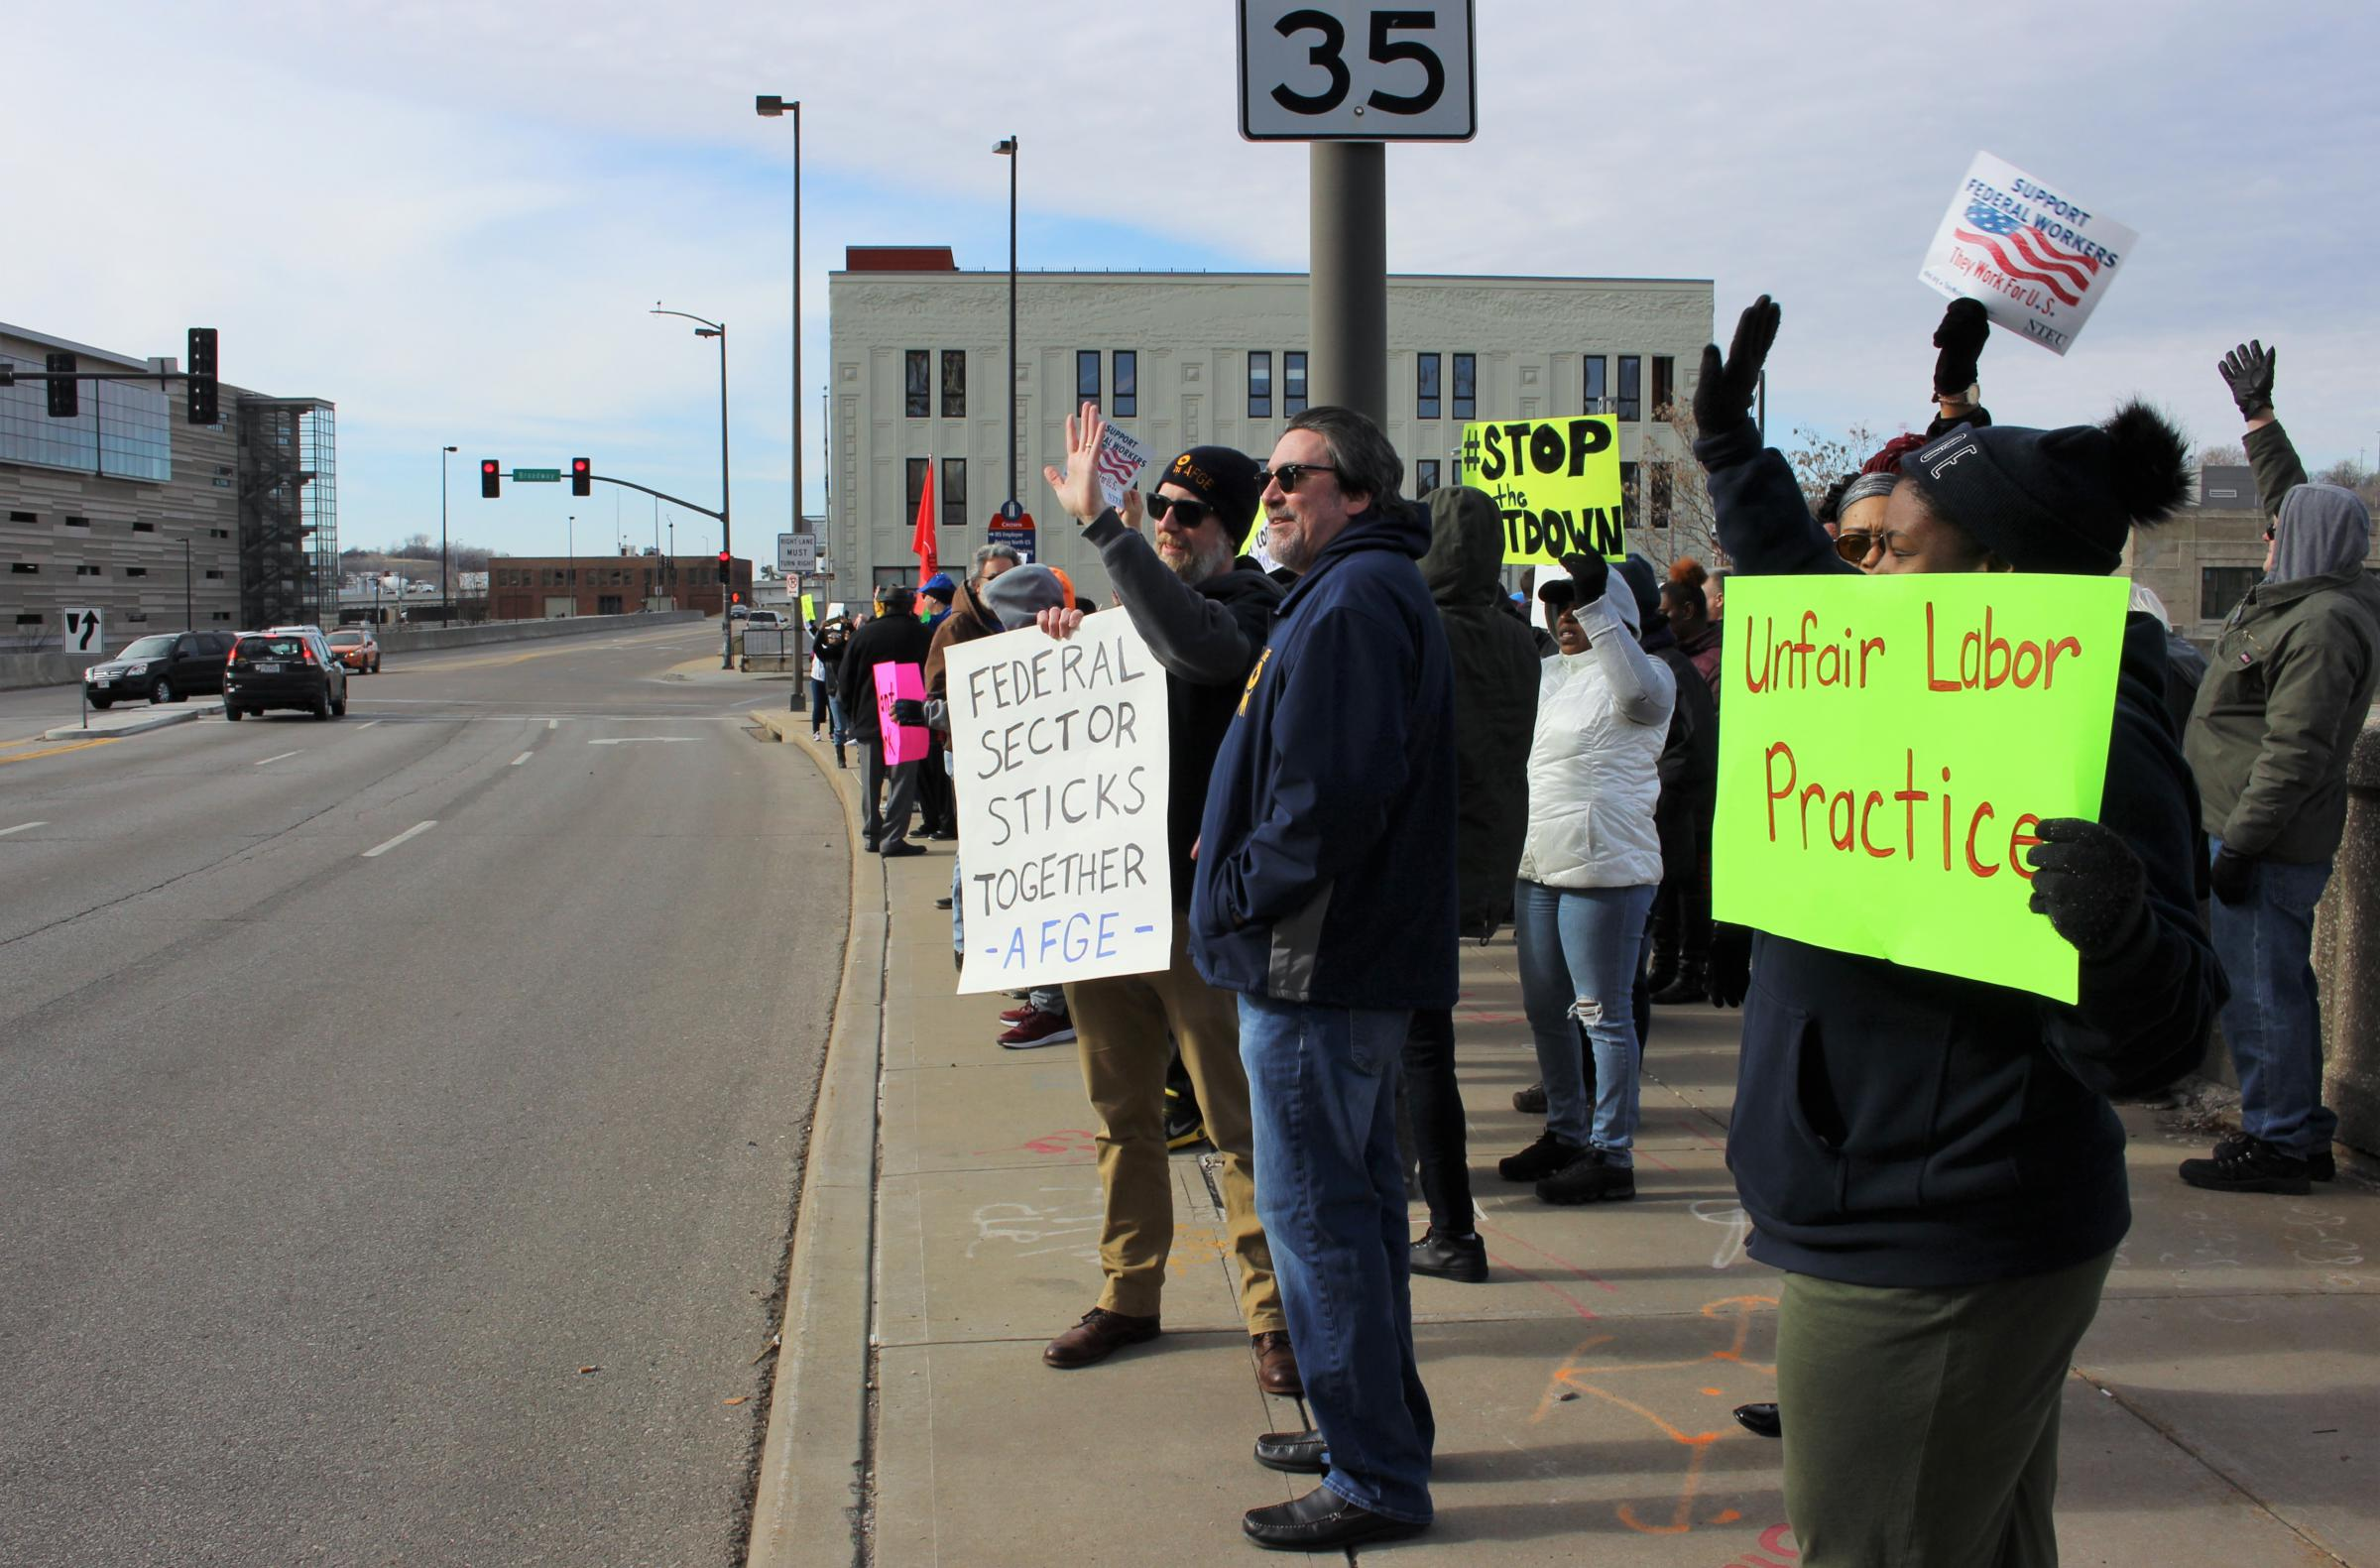 Federal Workers In Kansas City Are Fed Up After Three Weeks